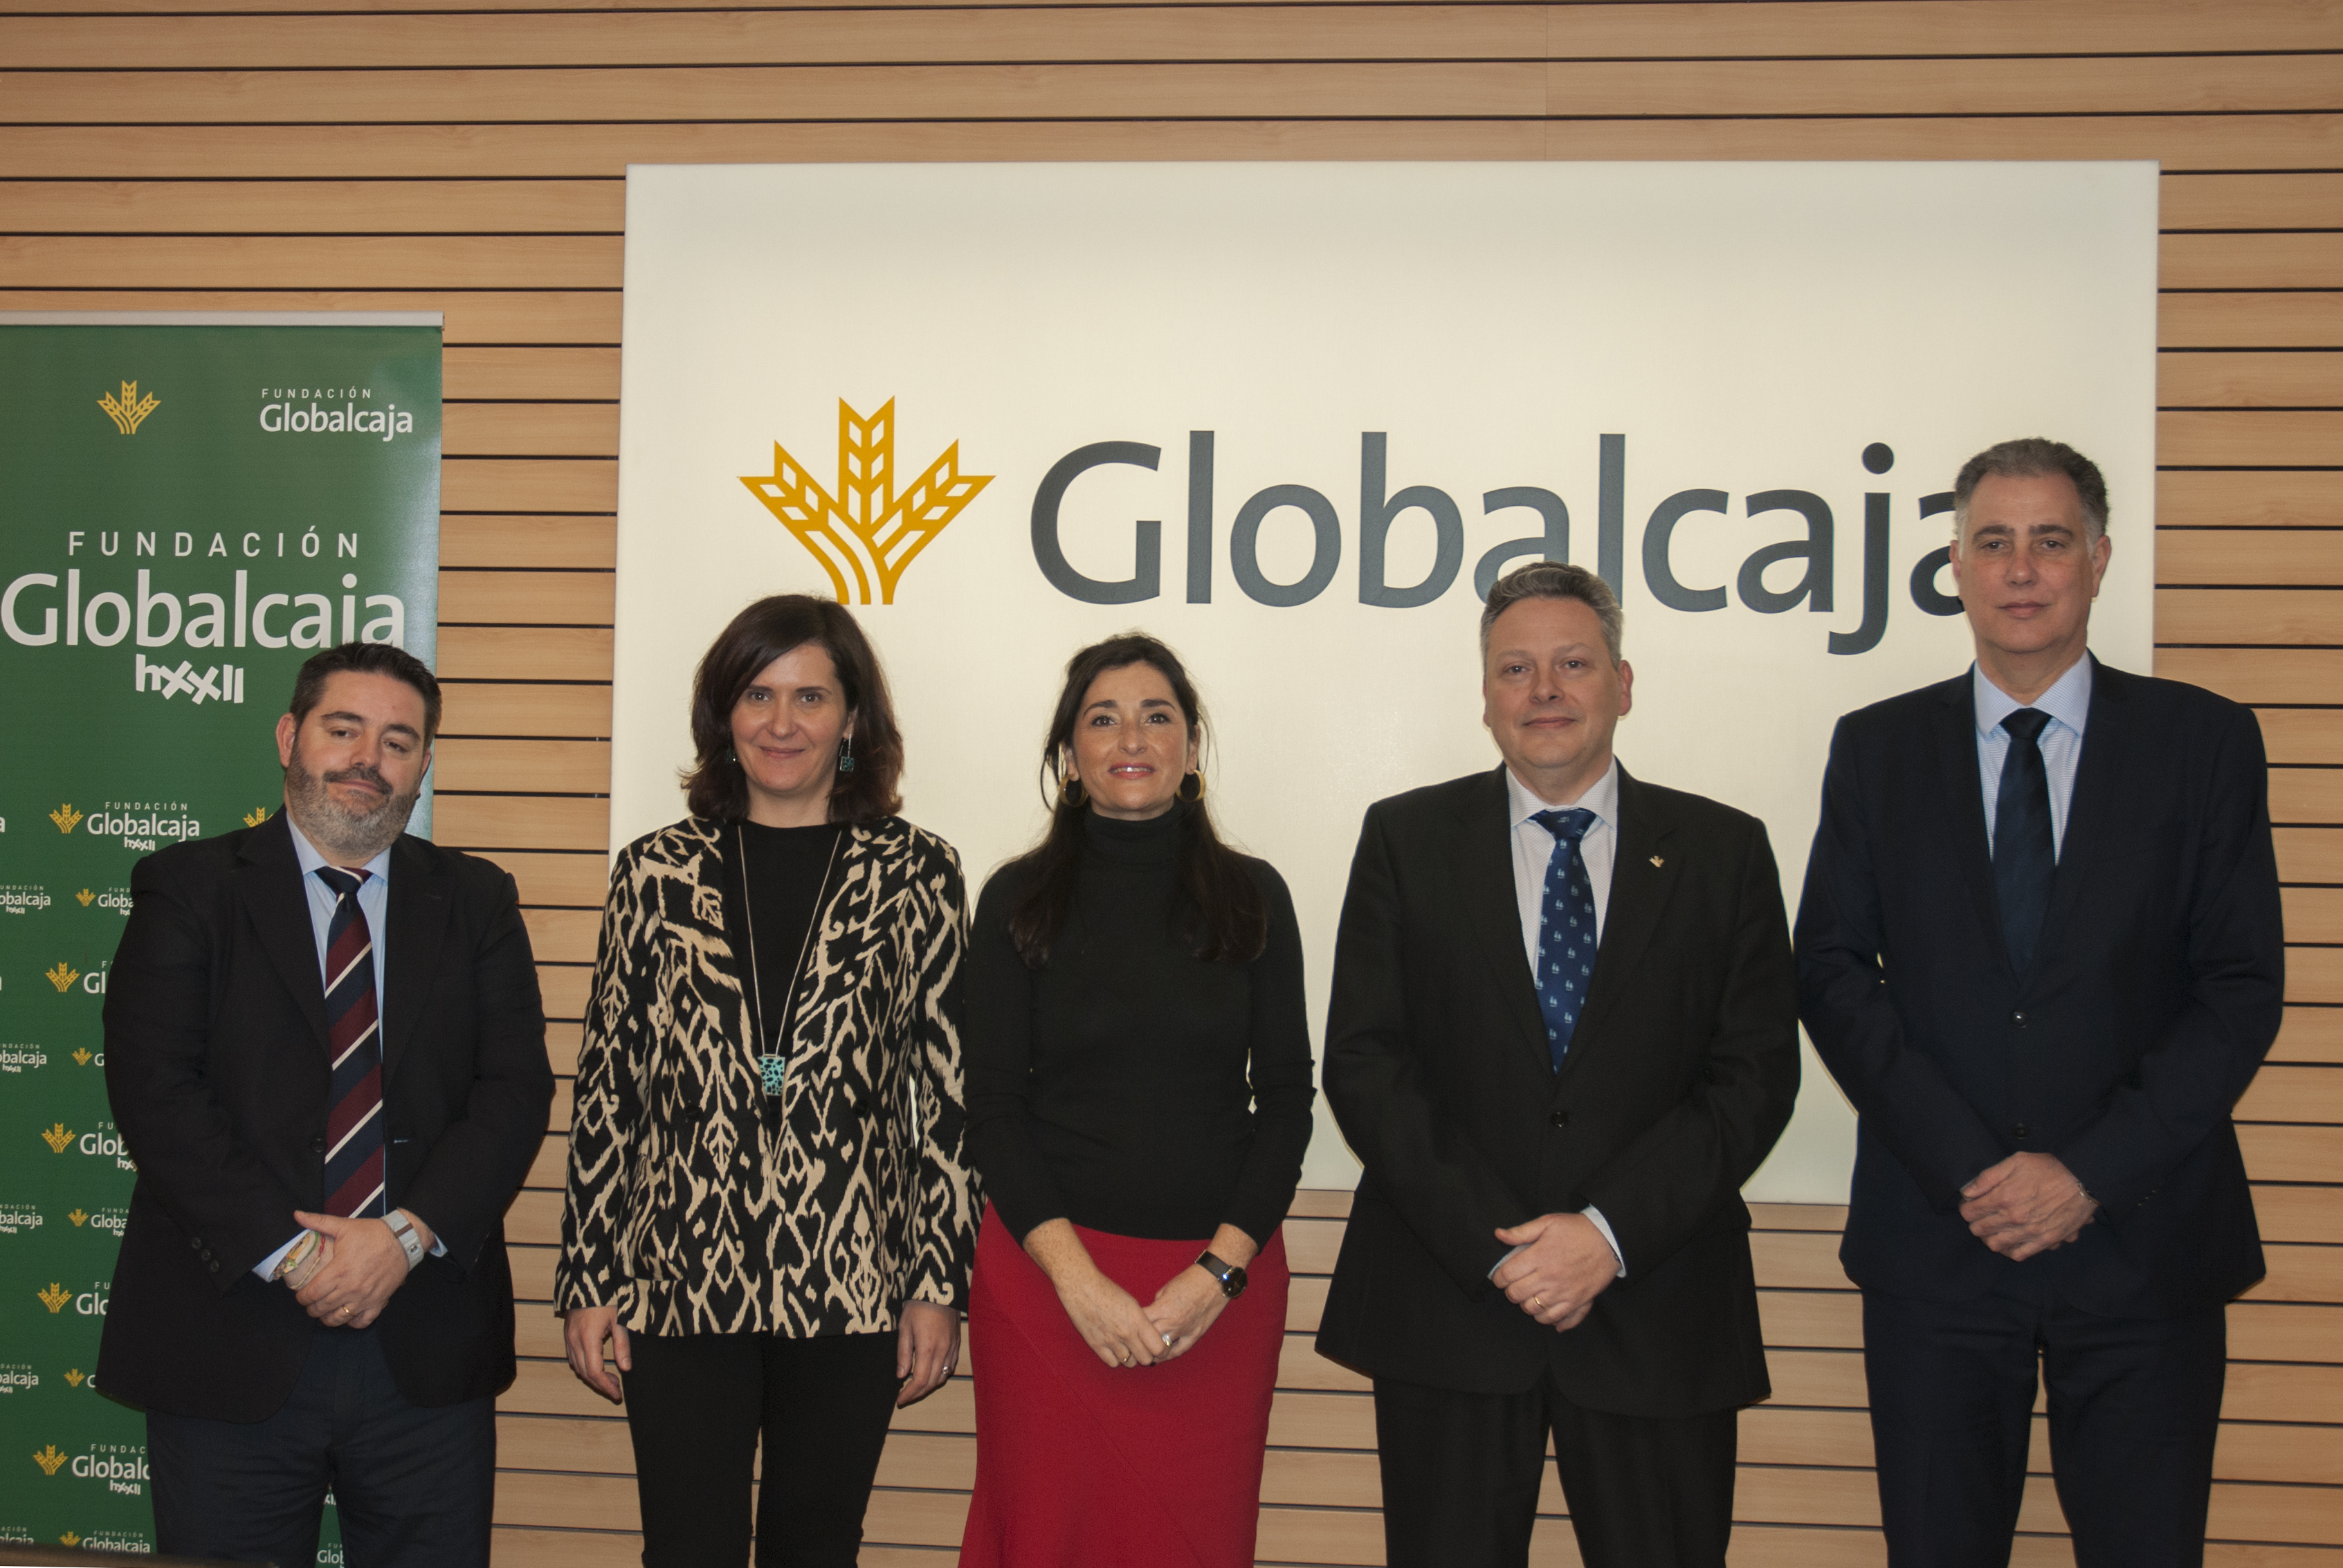 https://blog.globalcaja.es/wp-content/uploads/2020/02/SUE-Cuenca-AA.jpg